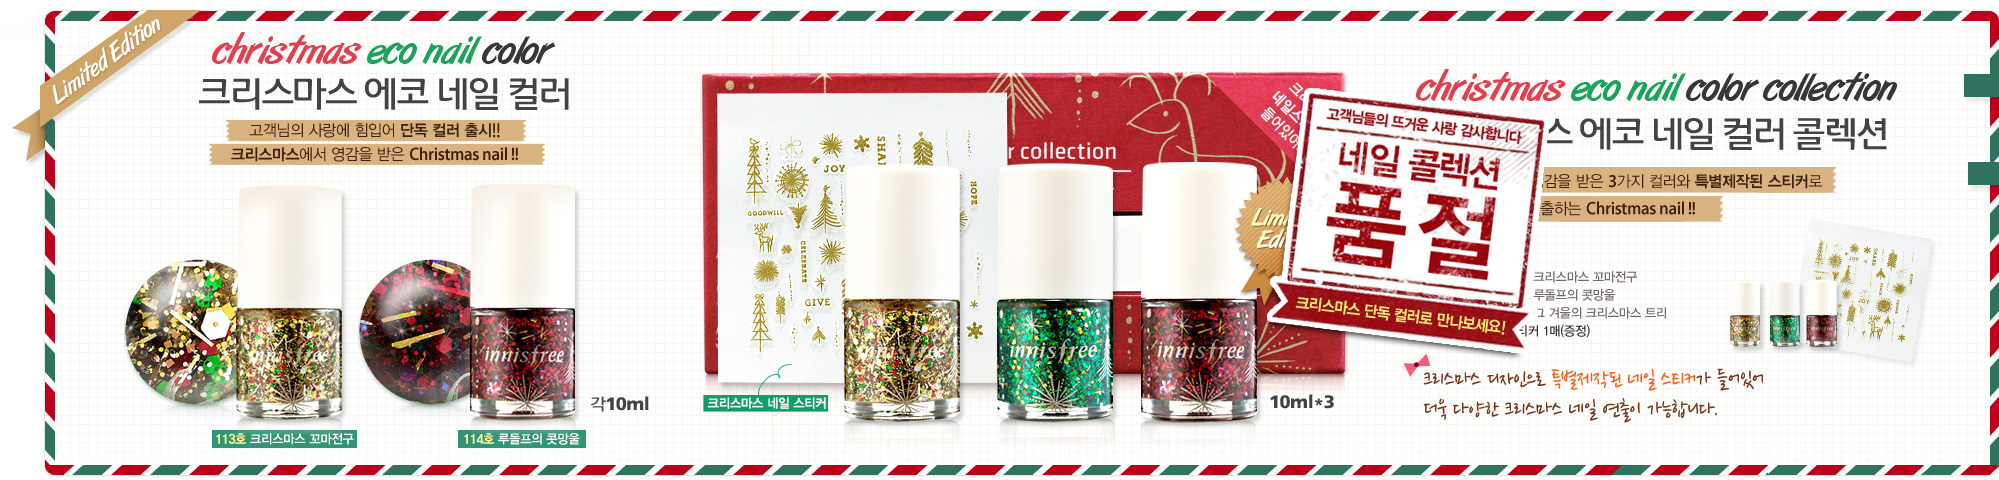 Innisfree Christmas Eco Nail Color collection